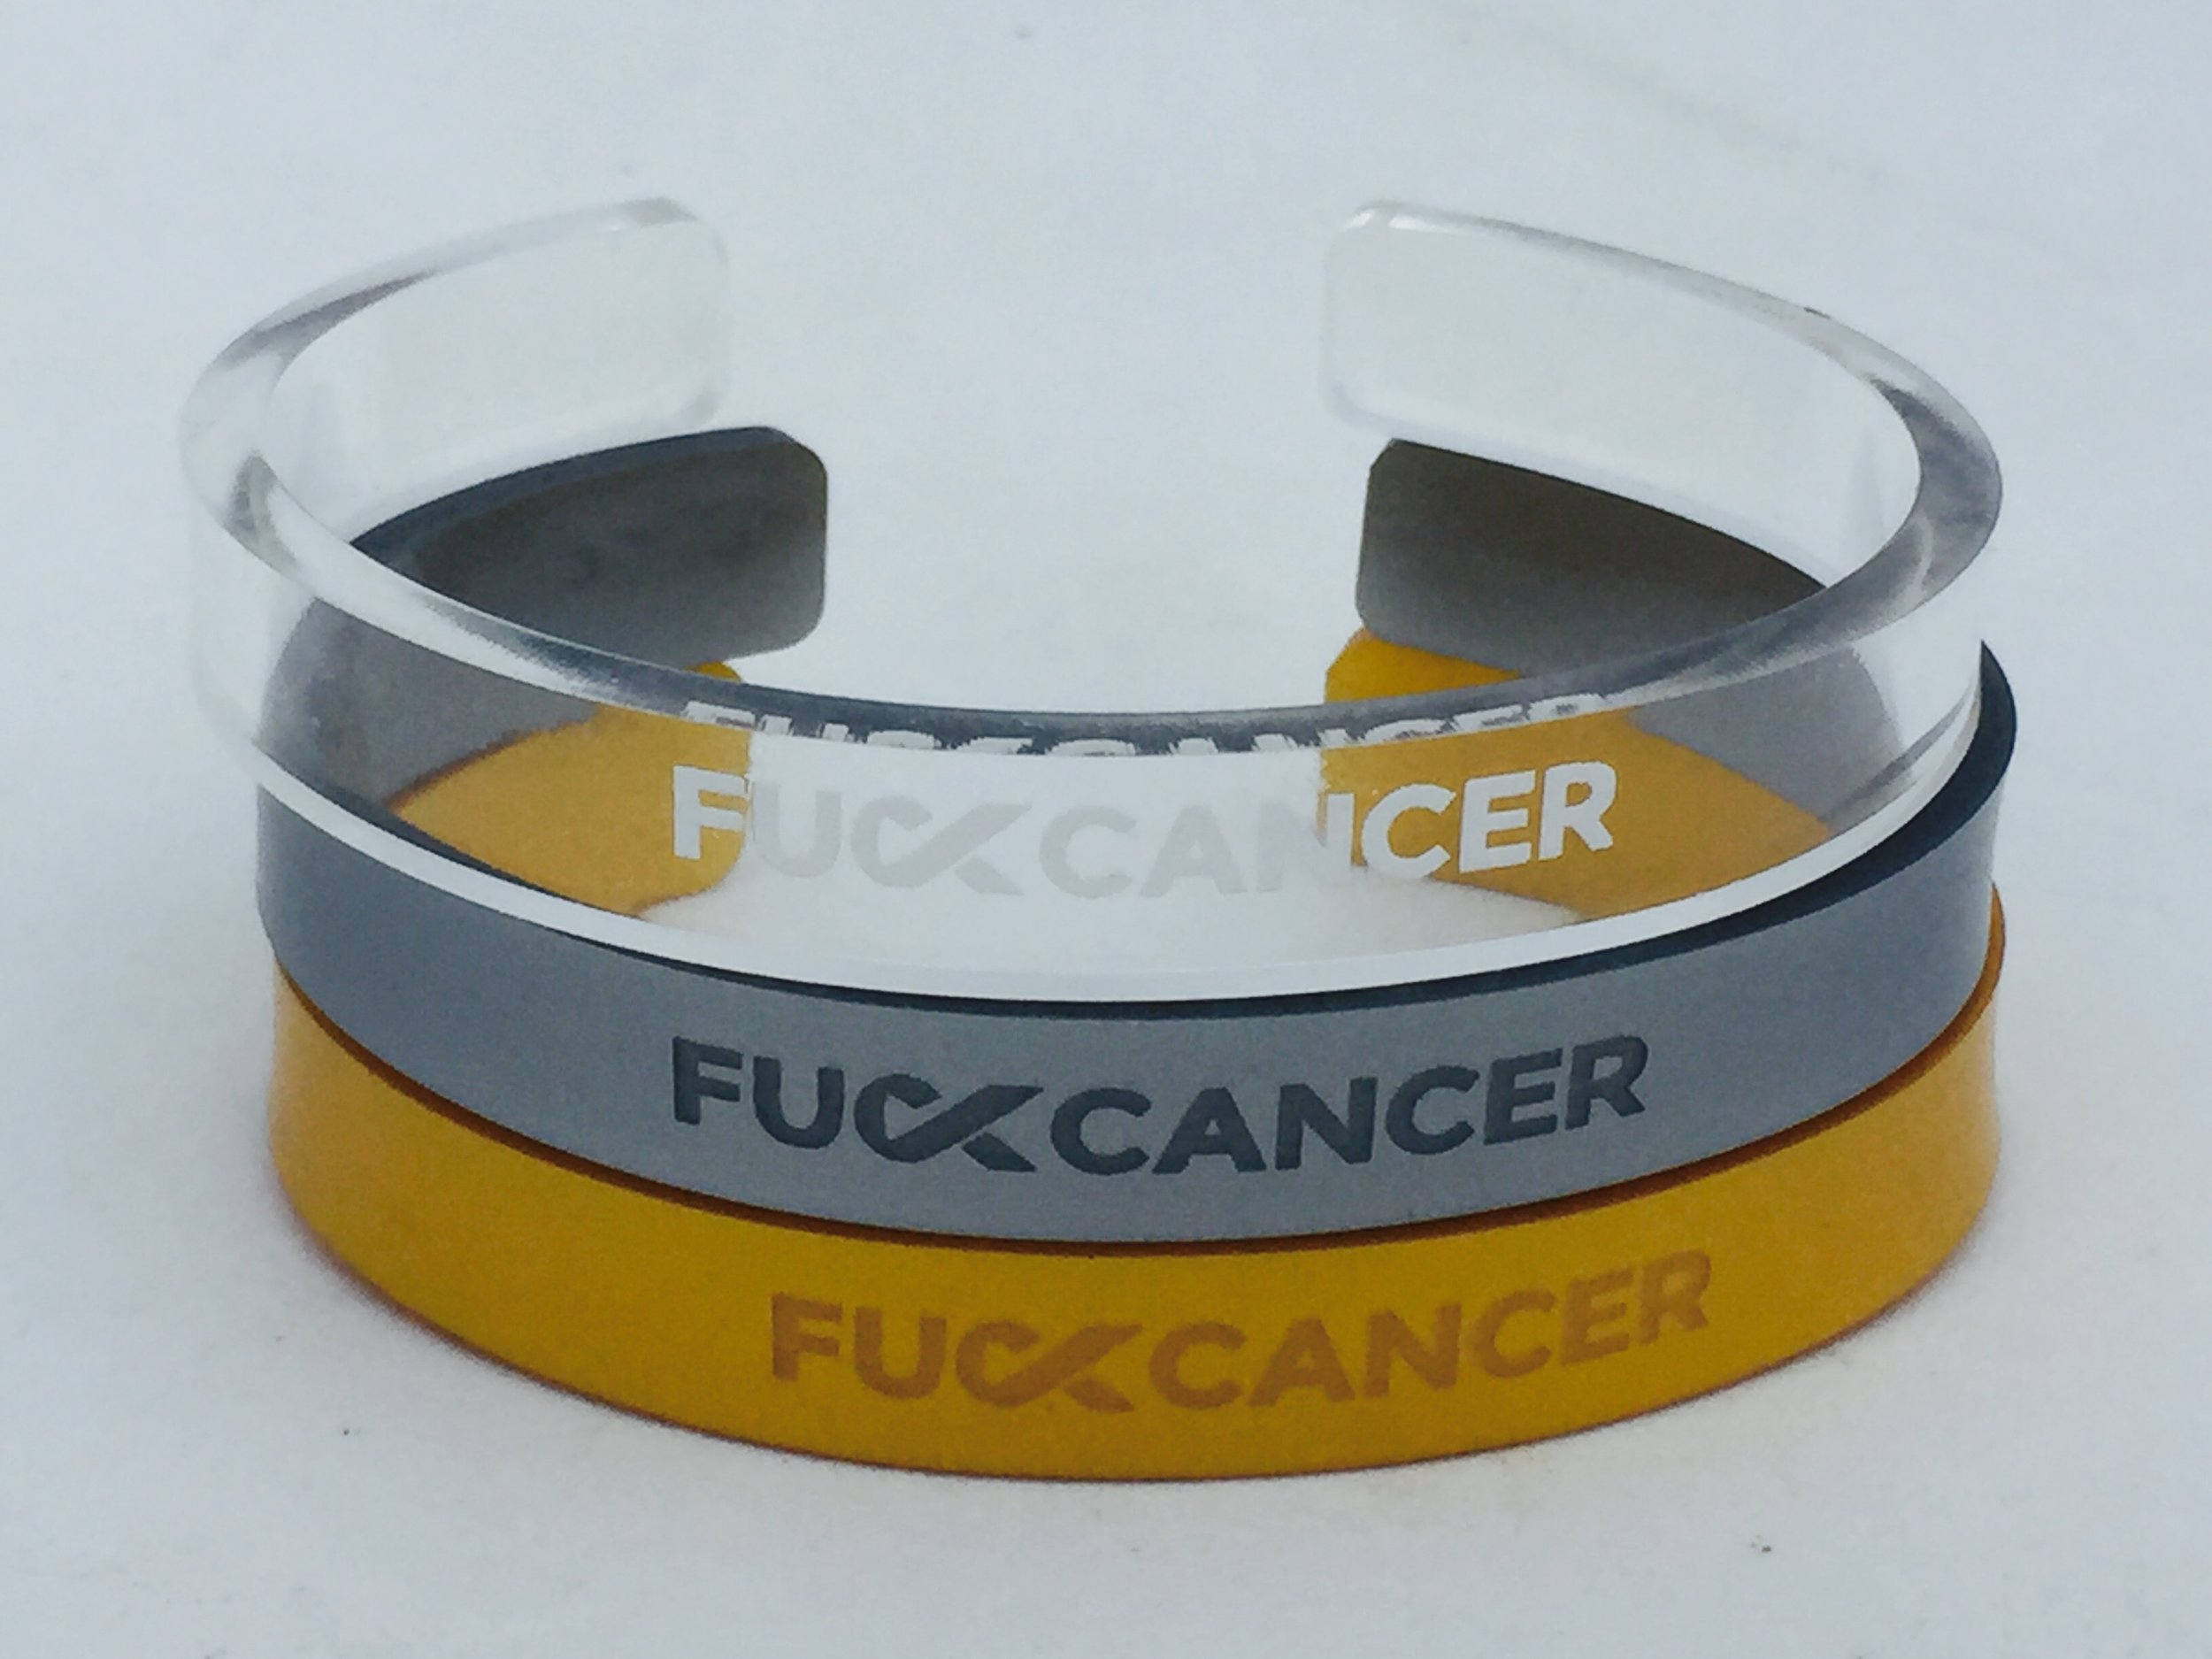 F Cancer now - Please visit SHOP F CANCER to purchase our handmade Lucite cuff designs. Proceeds go to this incredible organization to help all affected by cancer.